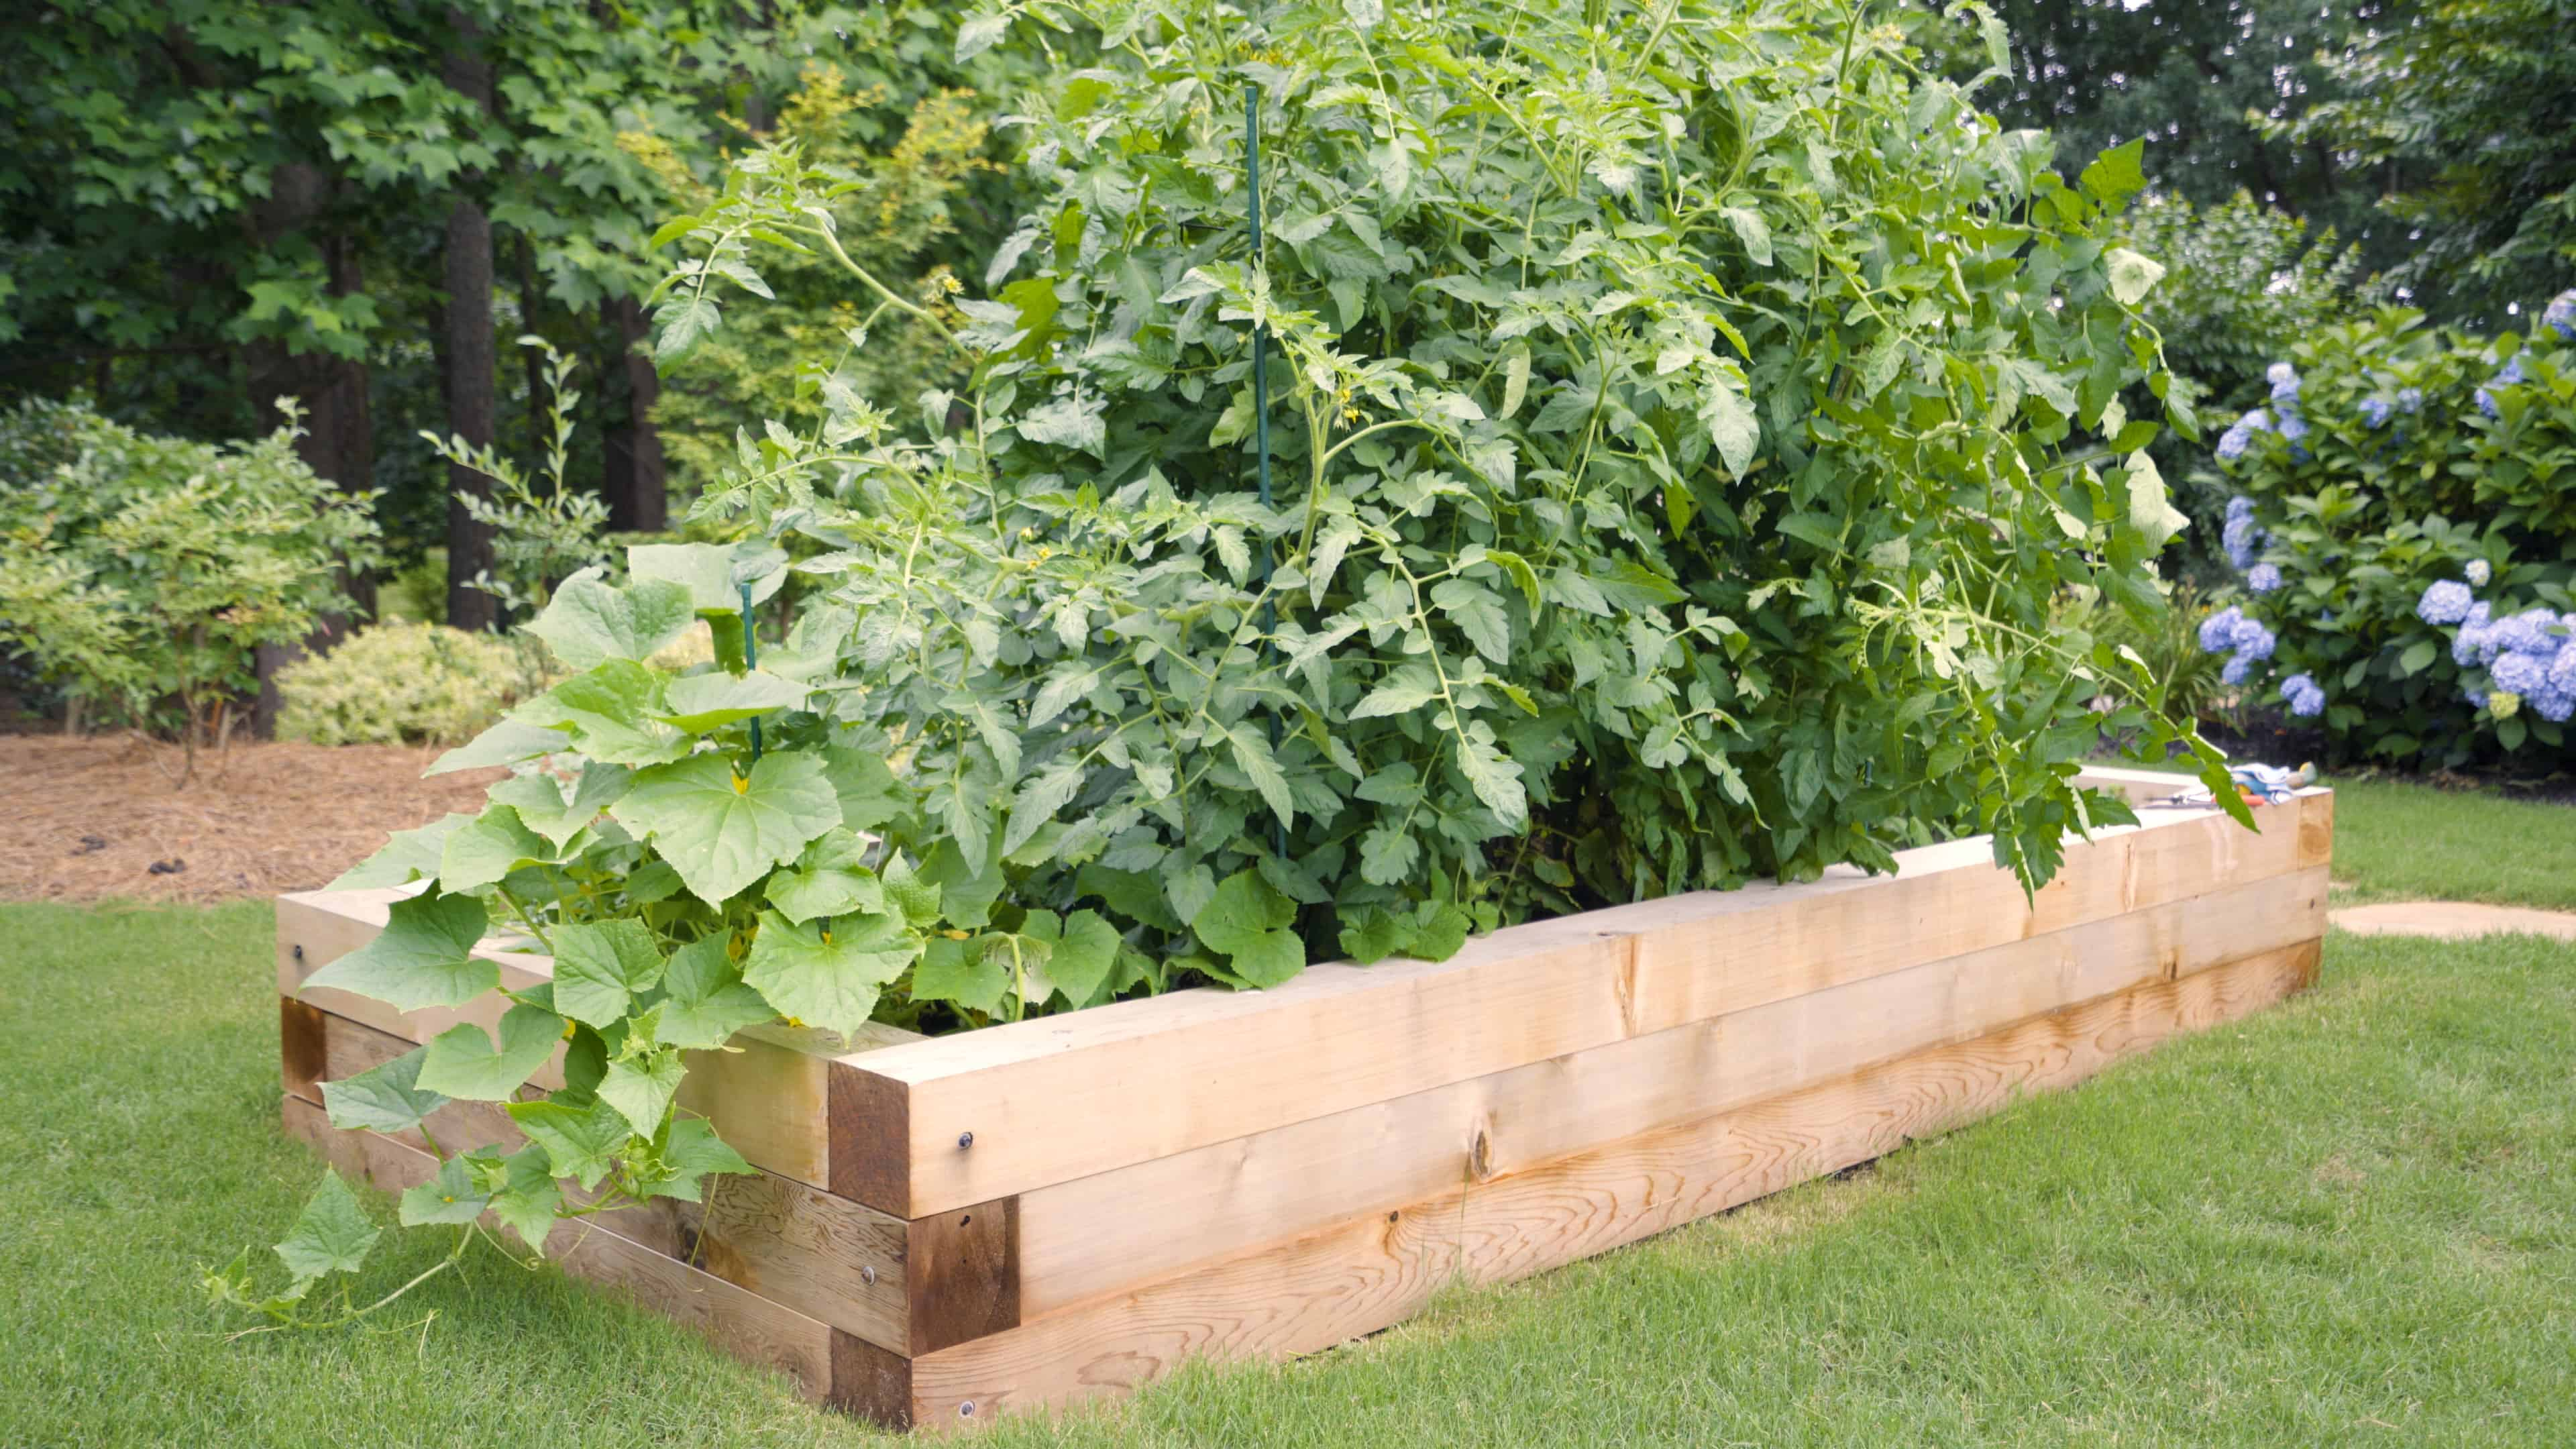 Raised beds are a great way to grow vegetables